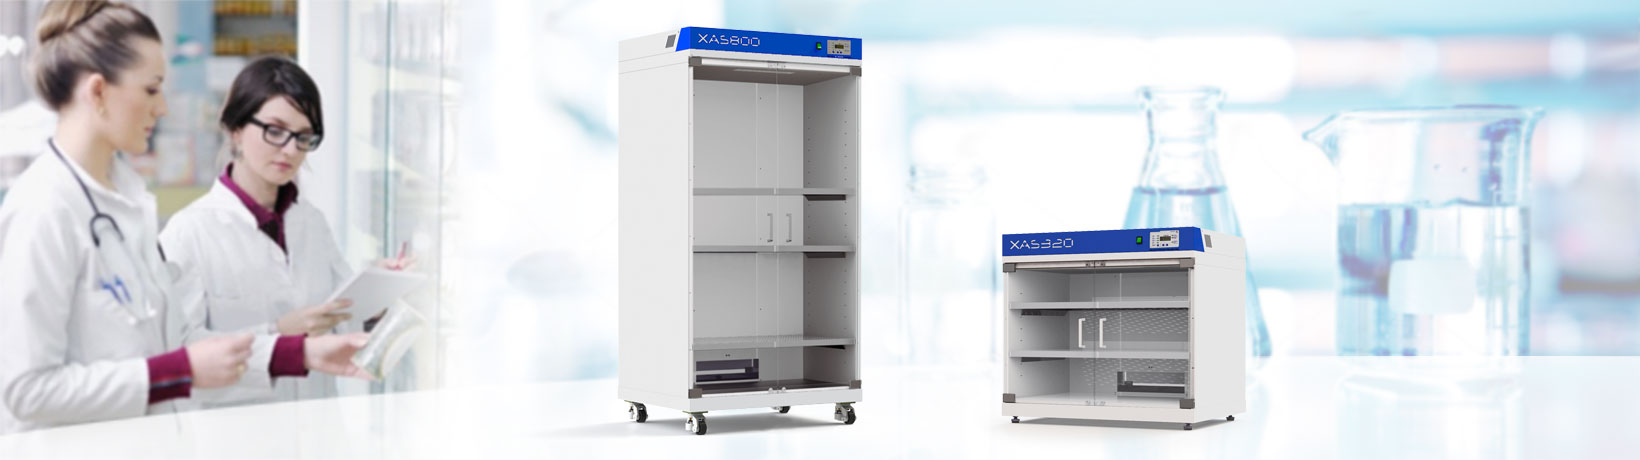 France Etuves glassware drying cabinets-xas